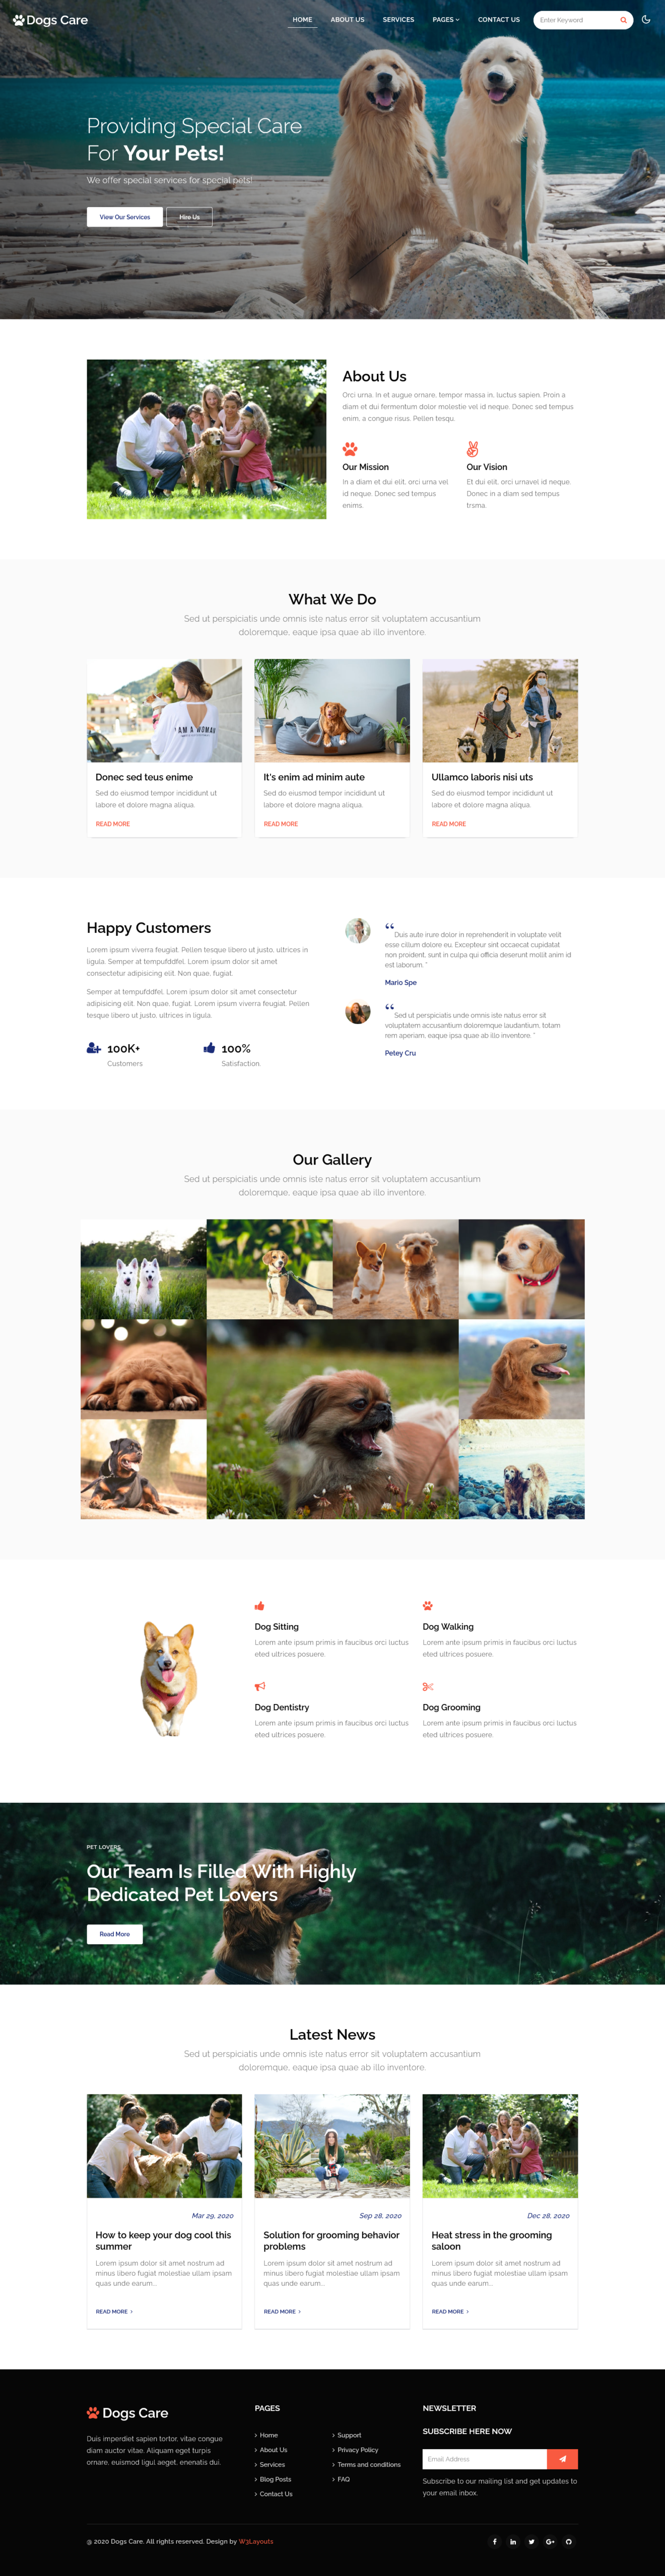 dogs care a pet care website template's home page